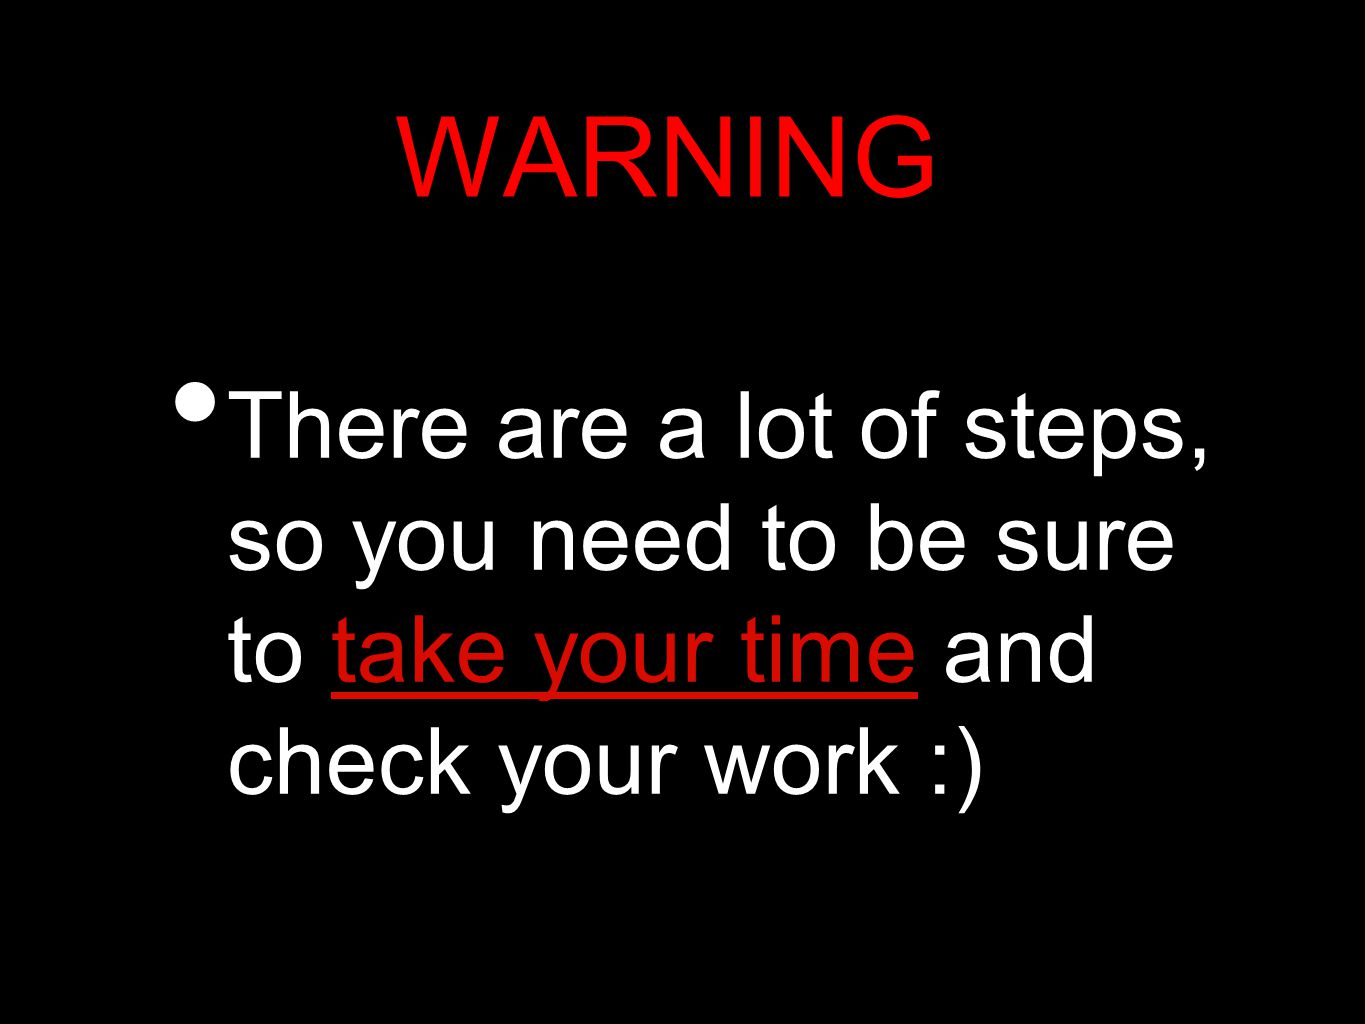 WARNING There are a lot of steps, so you need to be sure to take your time and check your work :)